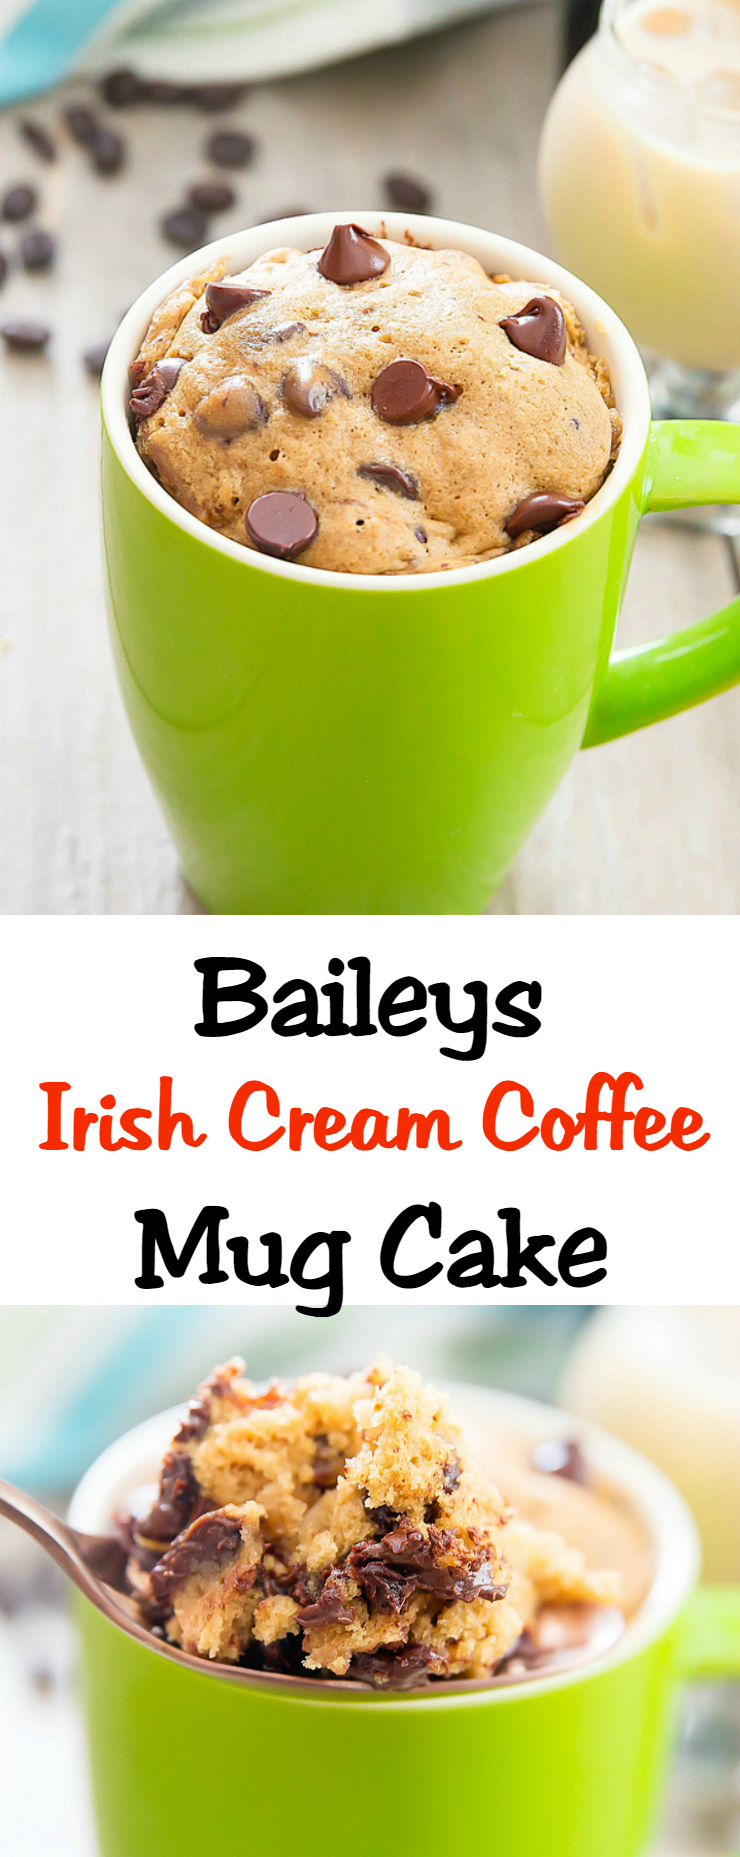 Baileys Irish Cream Chocolate Bundt Cake Recipe